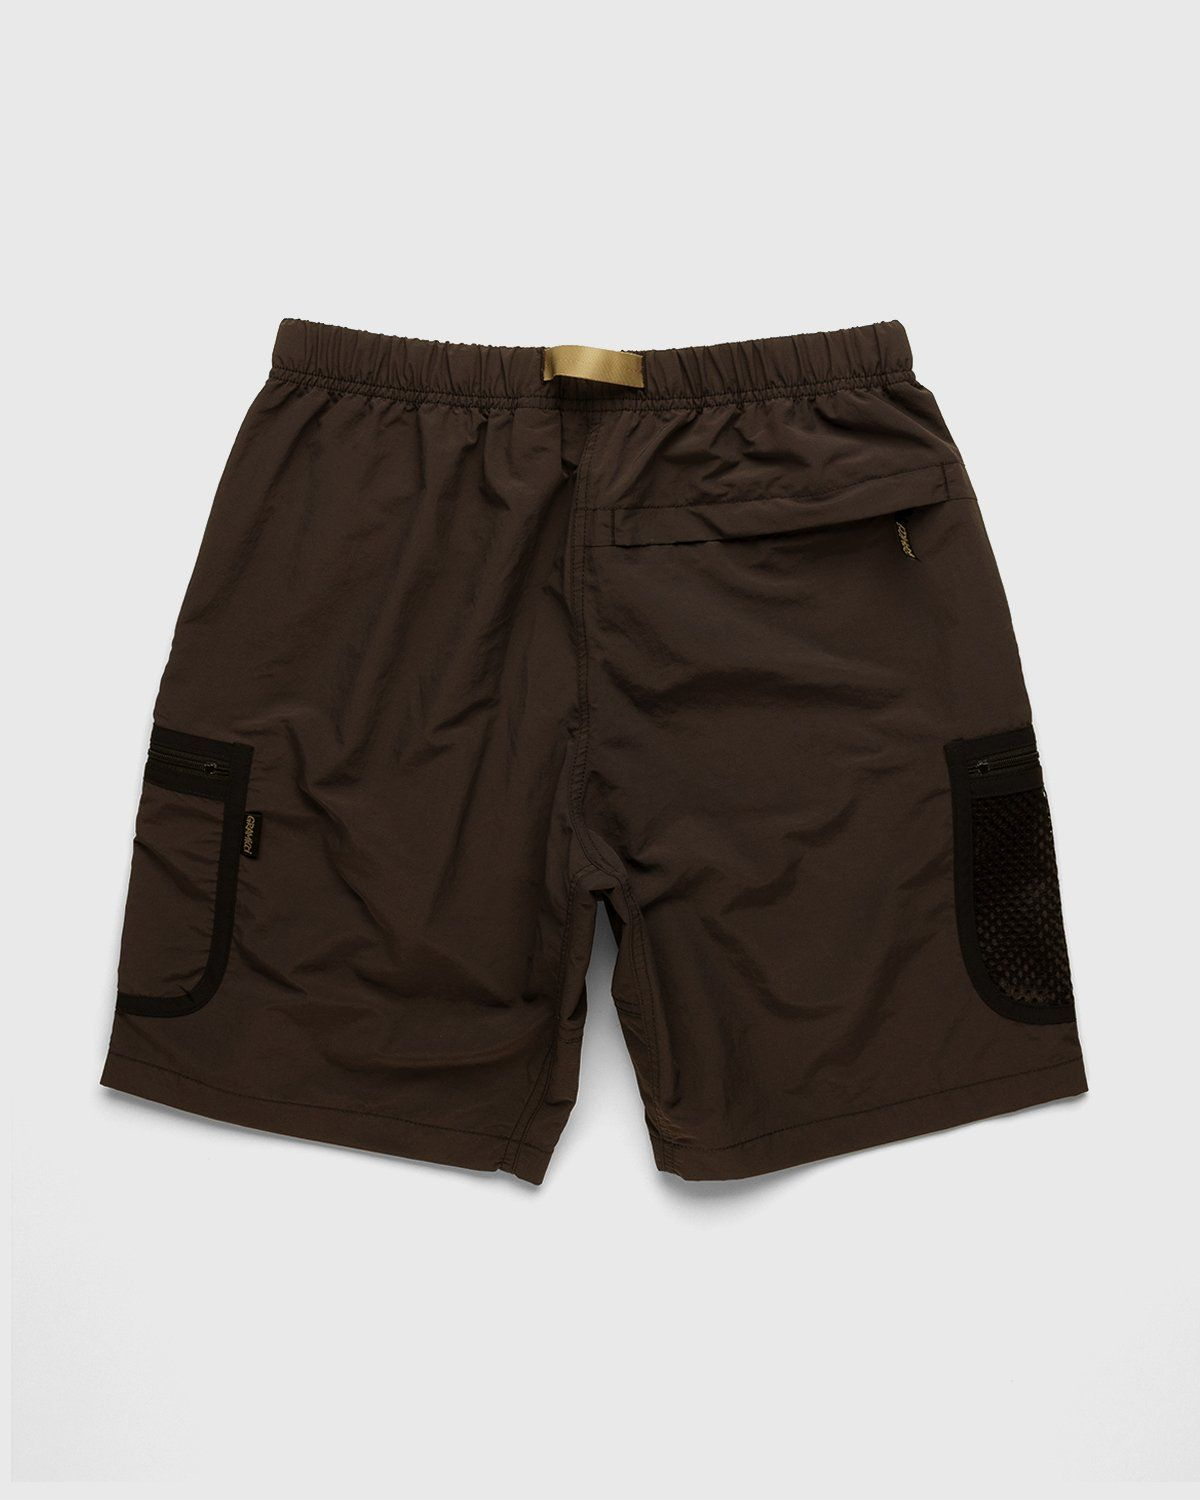 Gramicci for Highsnobiety – Shorts Brown - Image 2